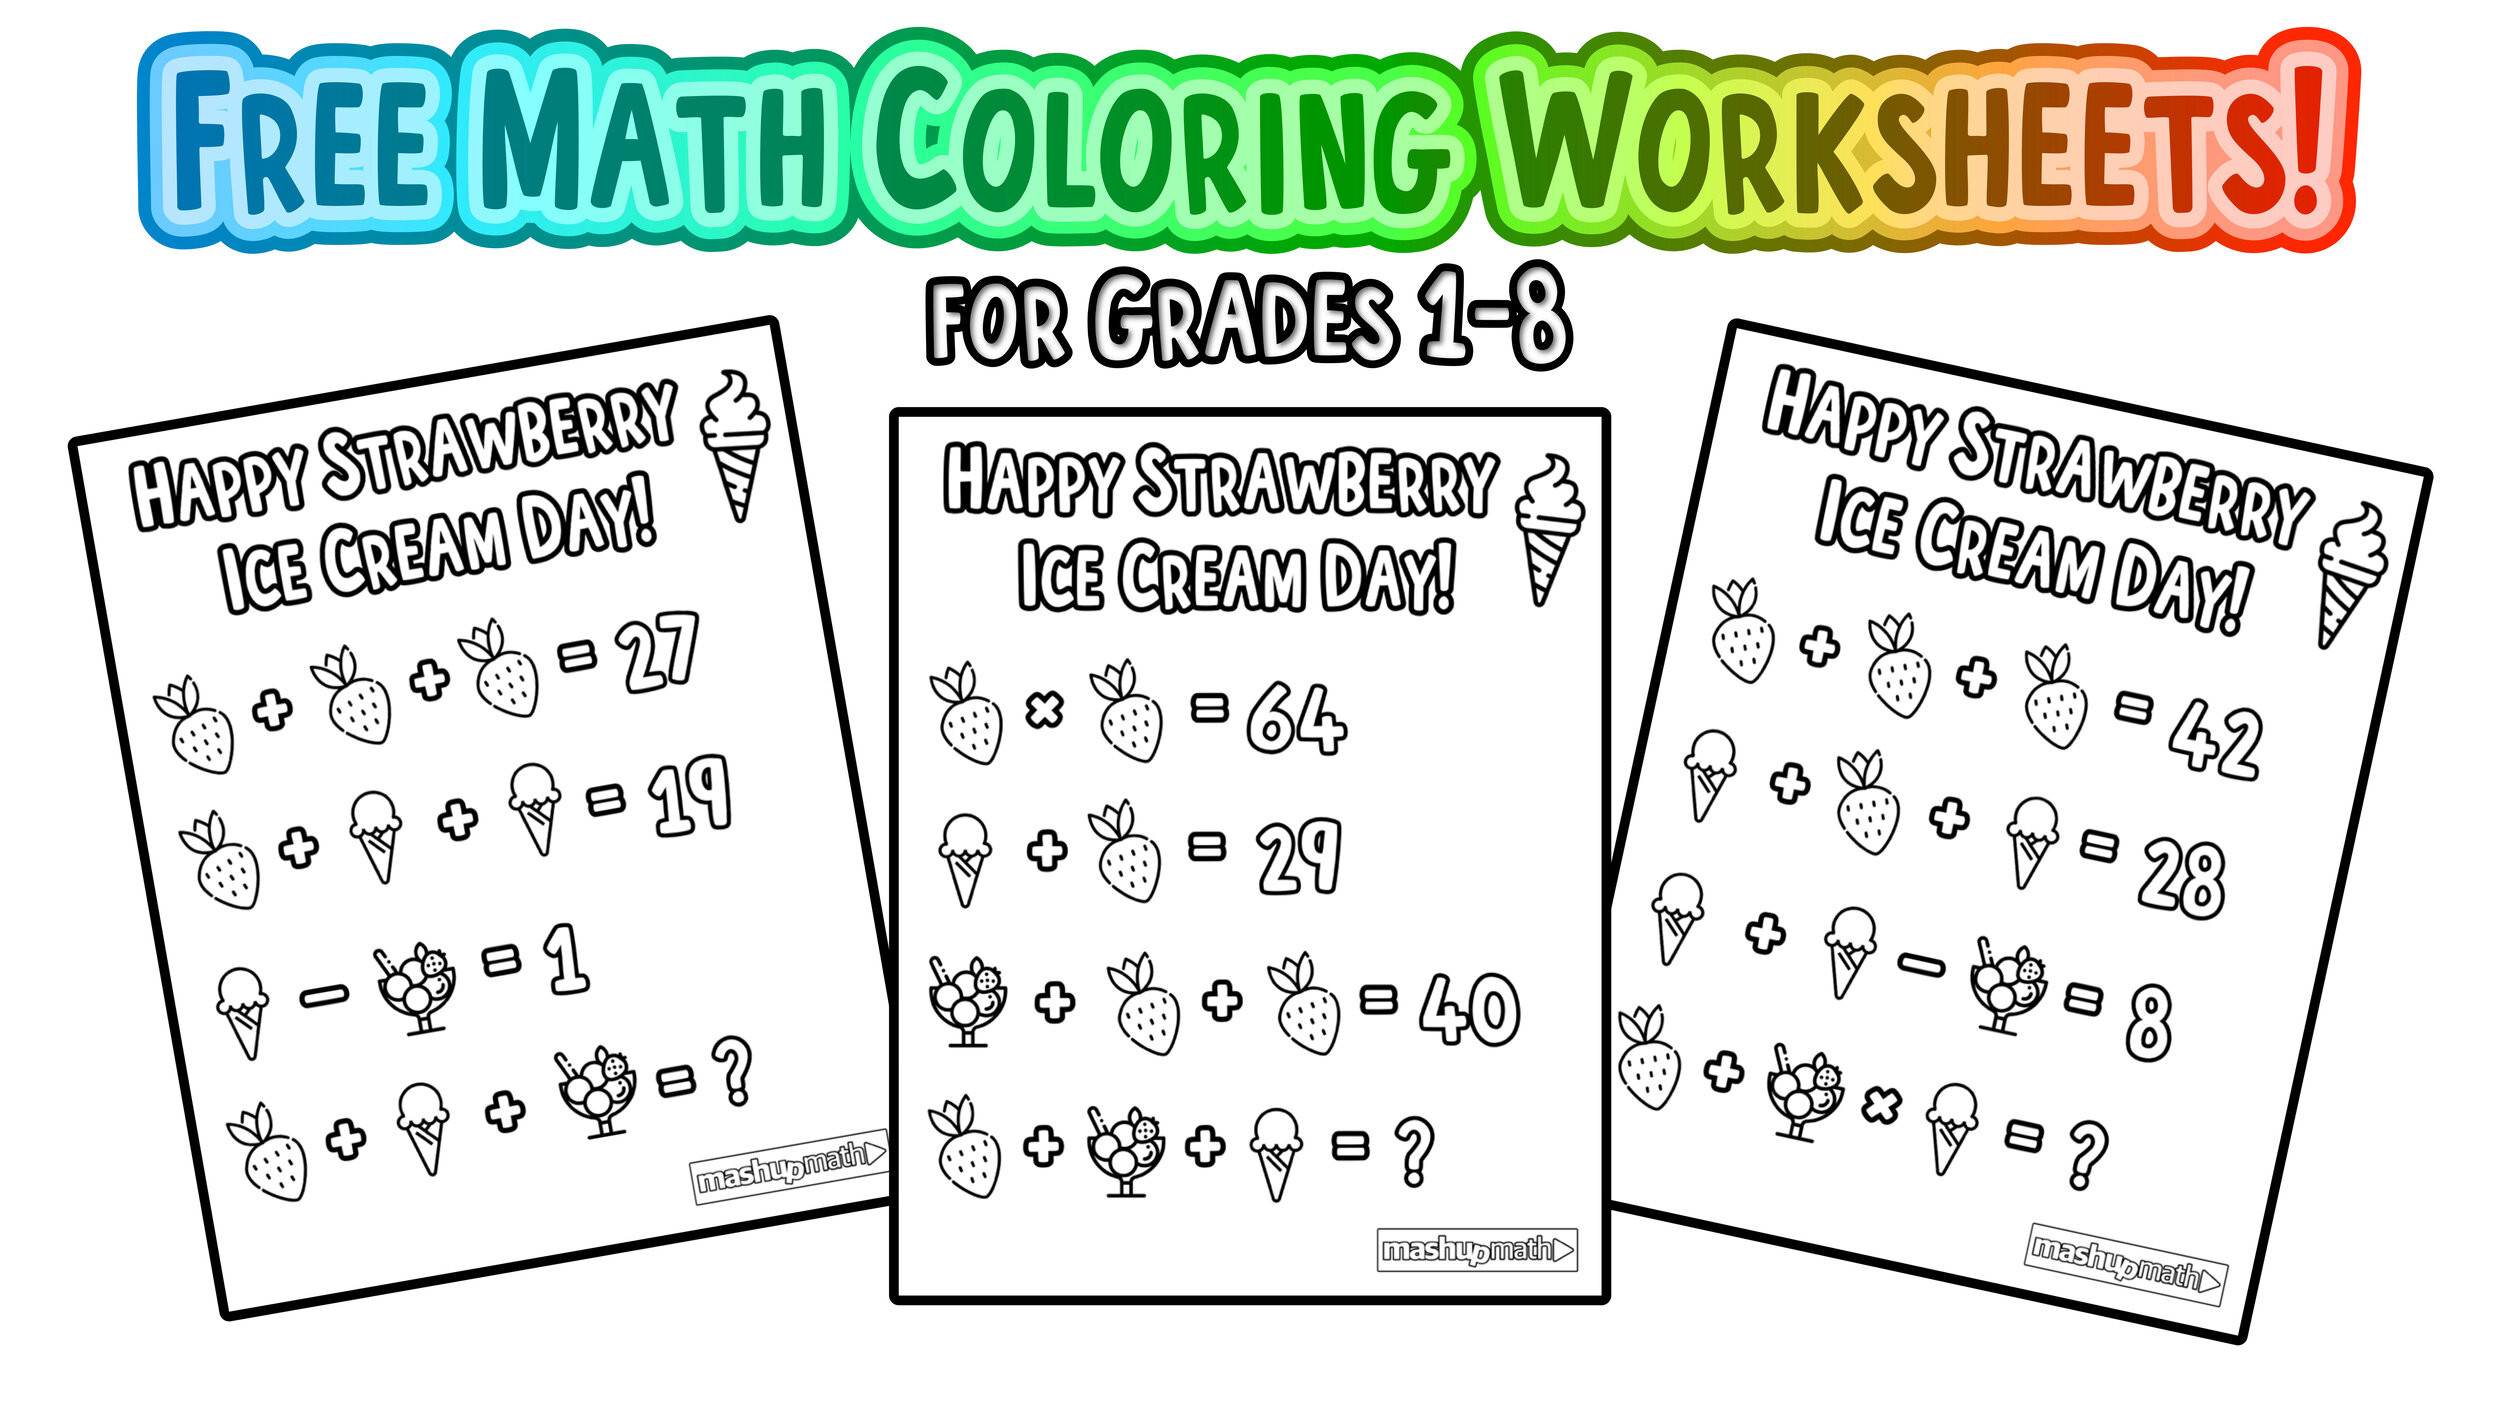 2nd Grade Math Coloring Worksheets Free Math Coloring Pages for Grades 1 8 — Mashup Math